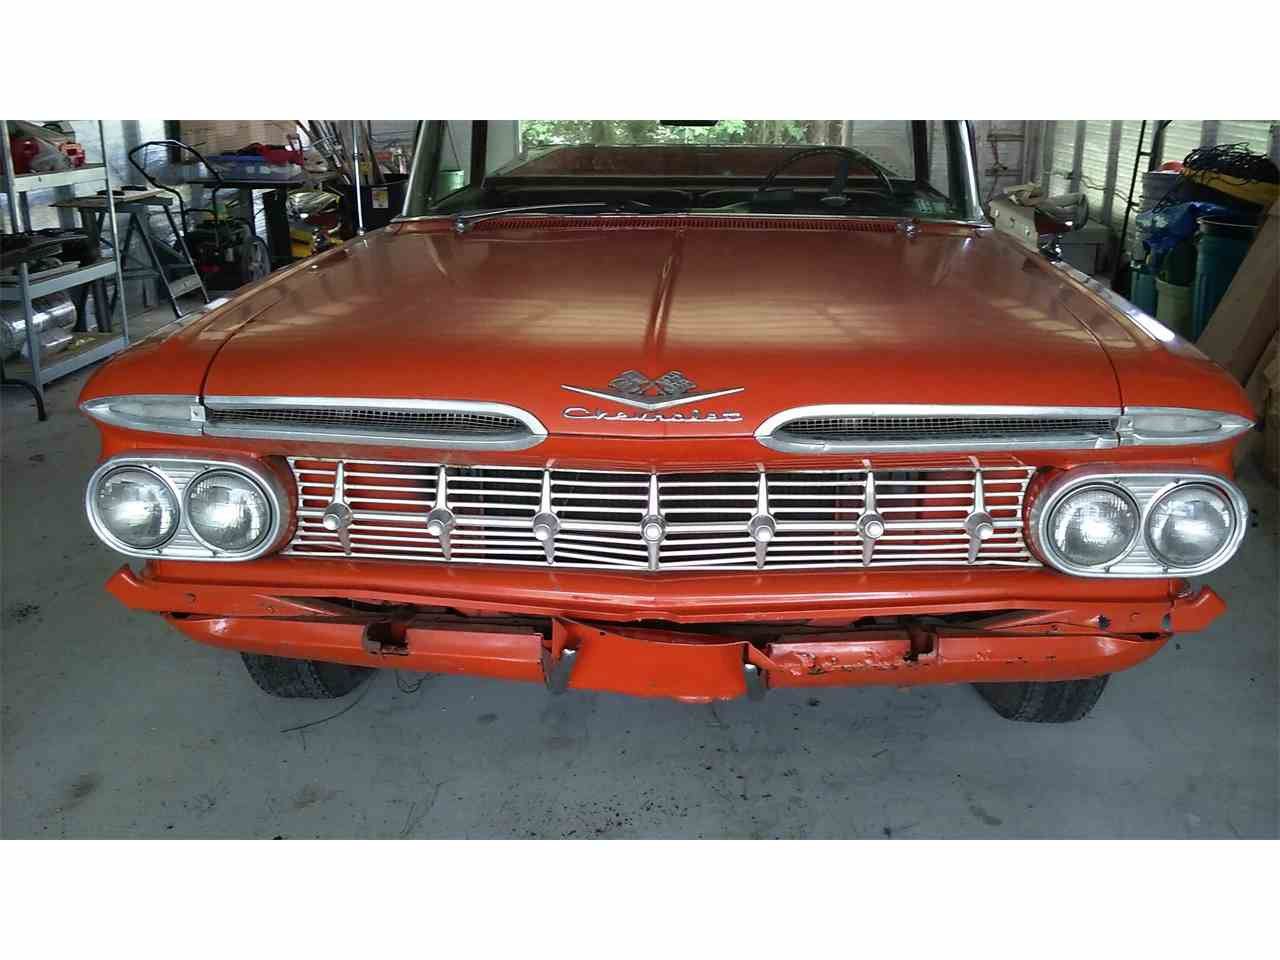 Large Picture of Classic '59 El Camino - $9,500.00 - IWY1